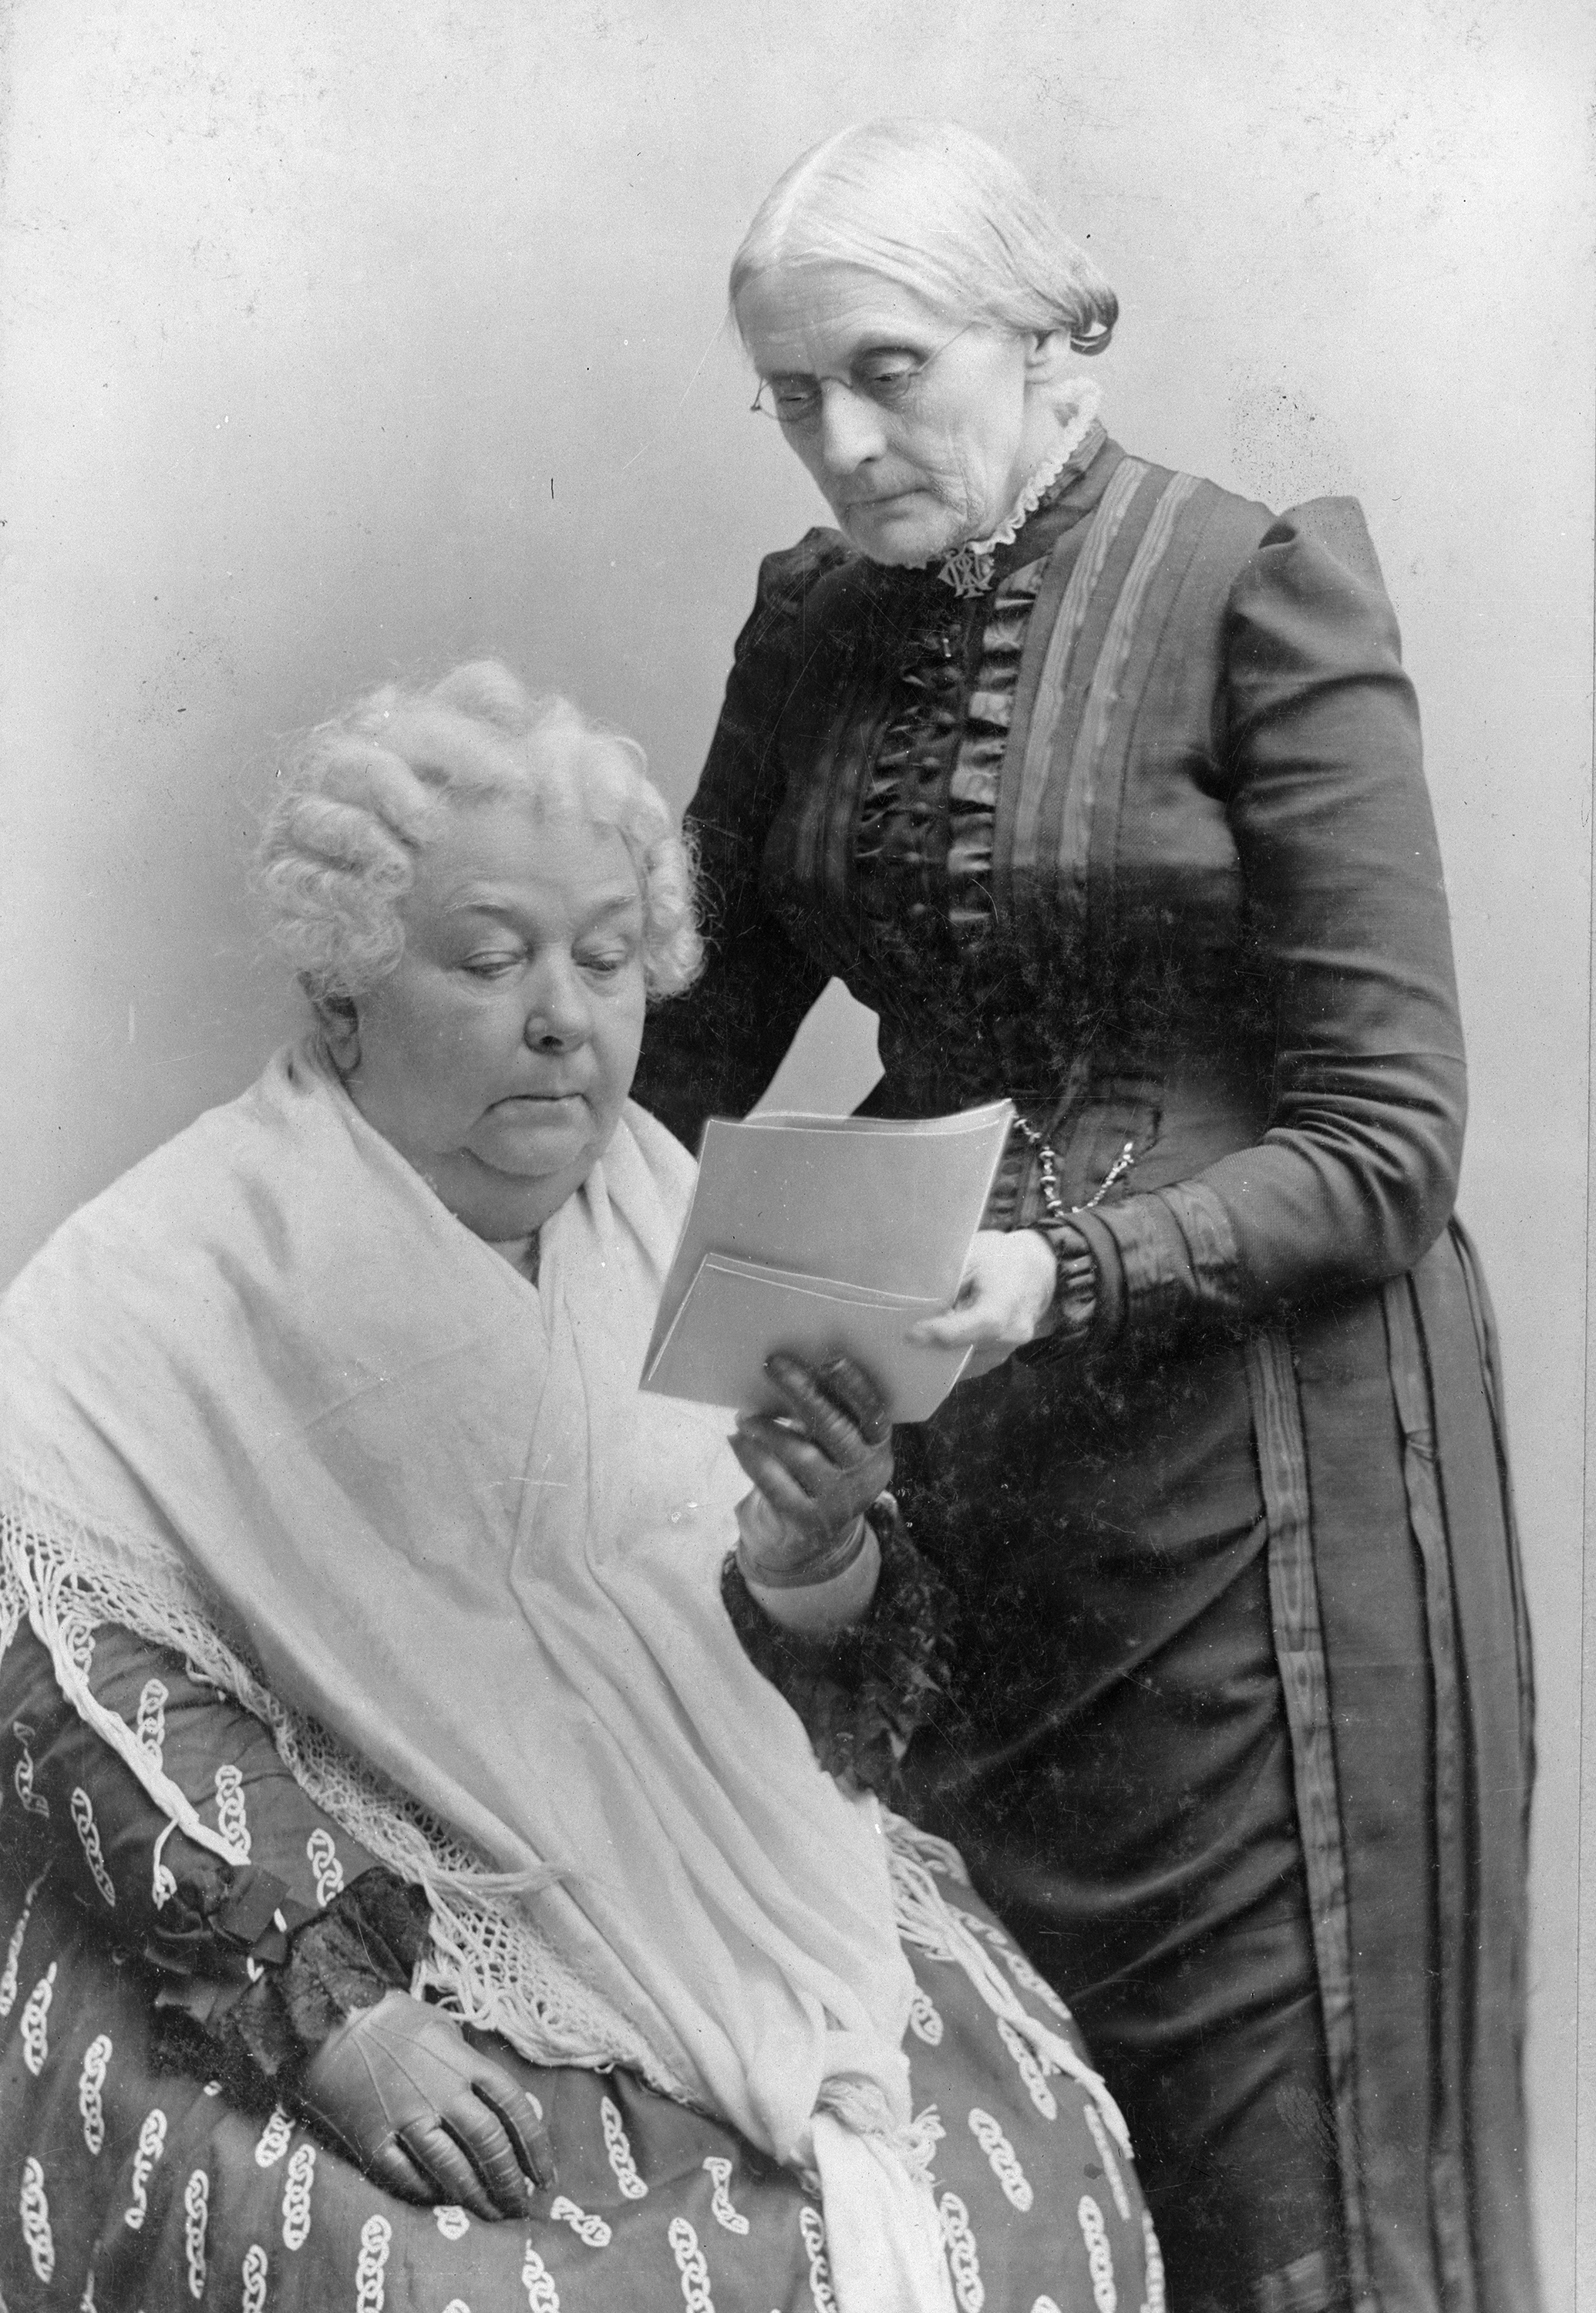 Early suffragist leaders Elizabeth Cady Stanton (left) and Susan B. Anthony later split off from their alliance with abolitionists. (Library of Congress)